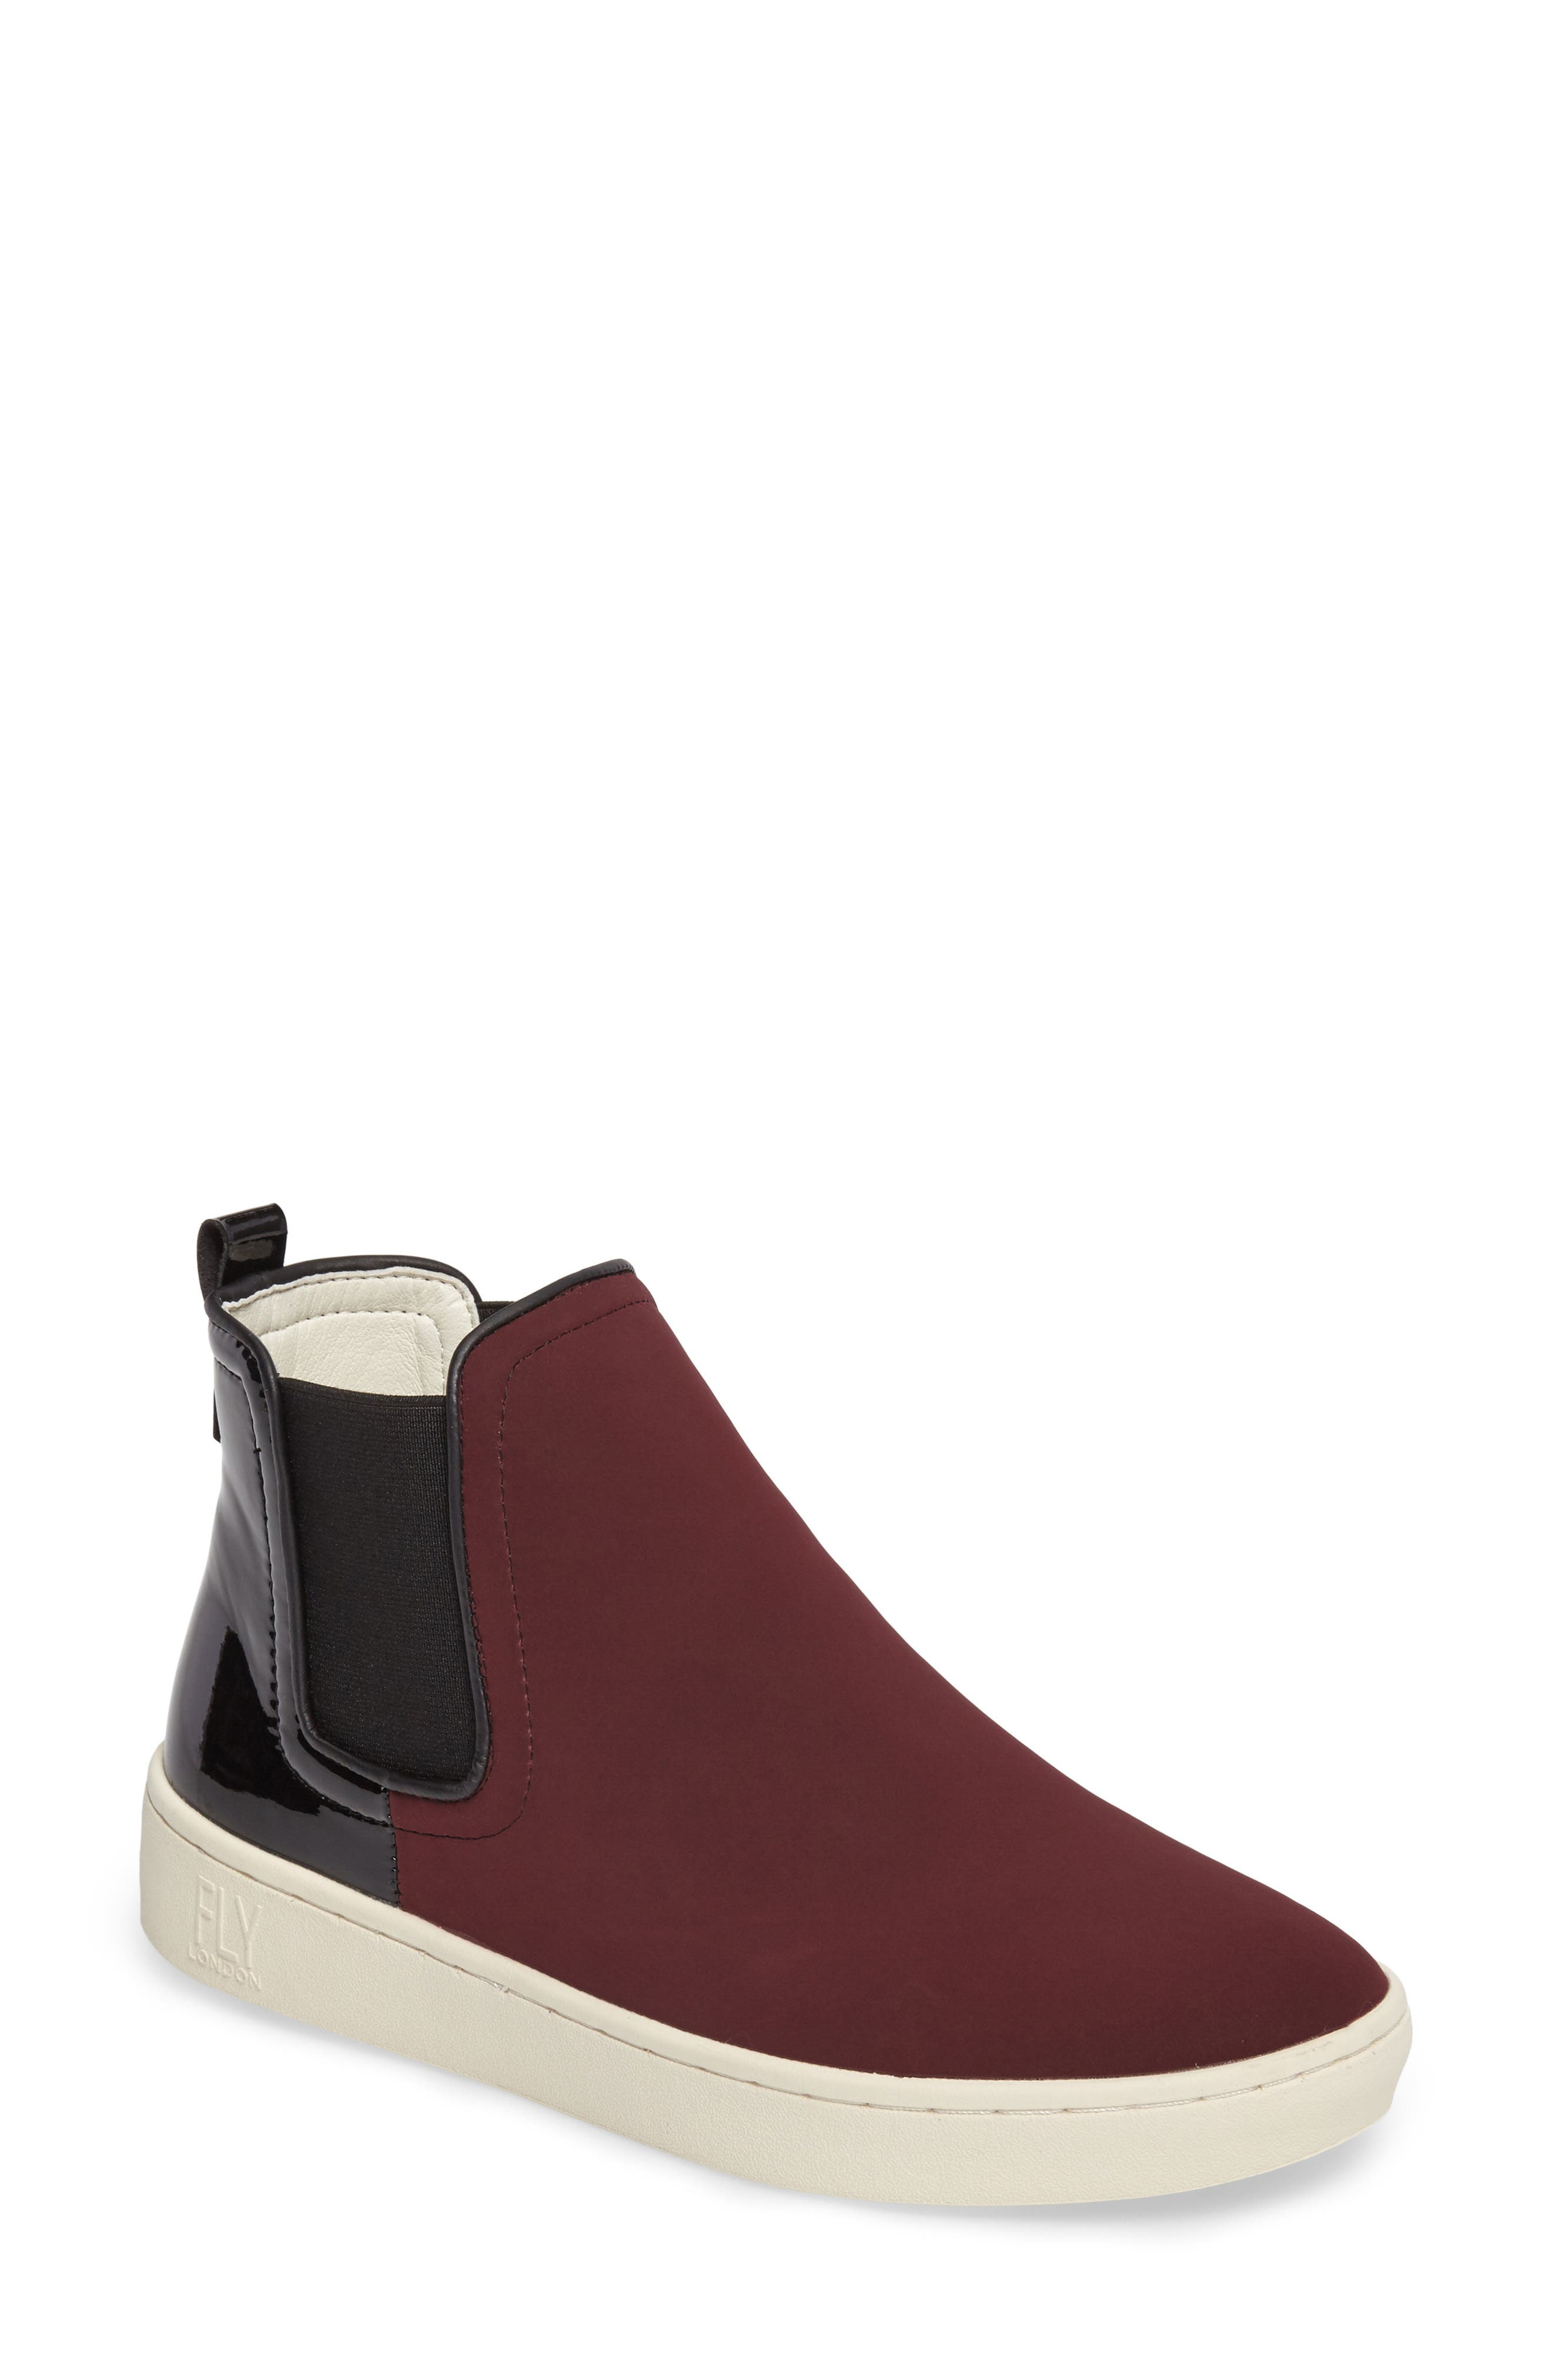 'Mabs' Slip-On Platform Sneaker,                             Main thumbnail 1, color,                             Bordeaux/ Black Leather